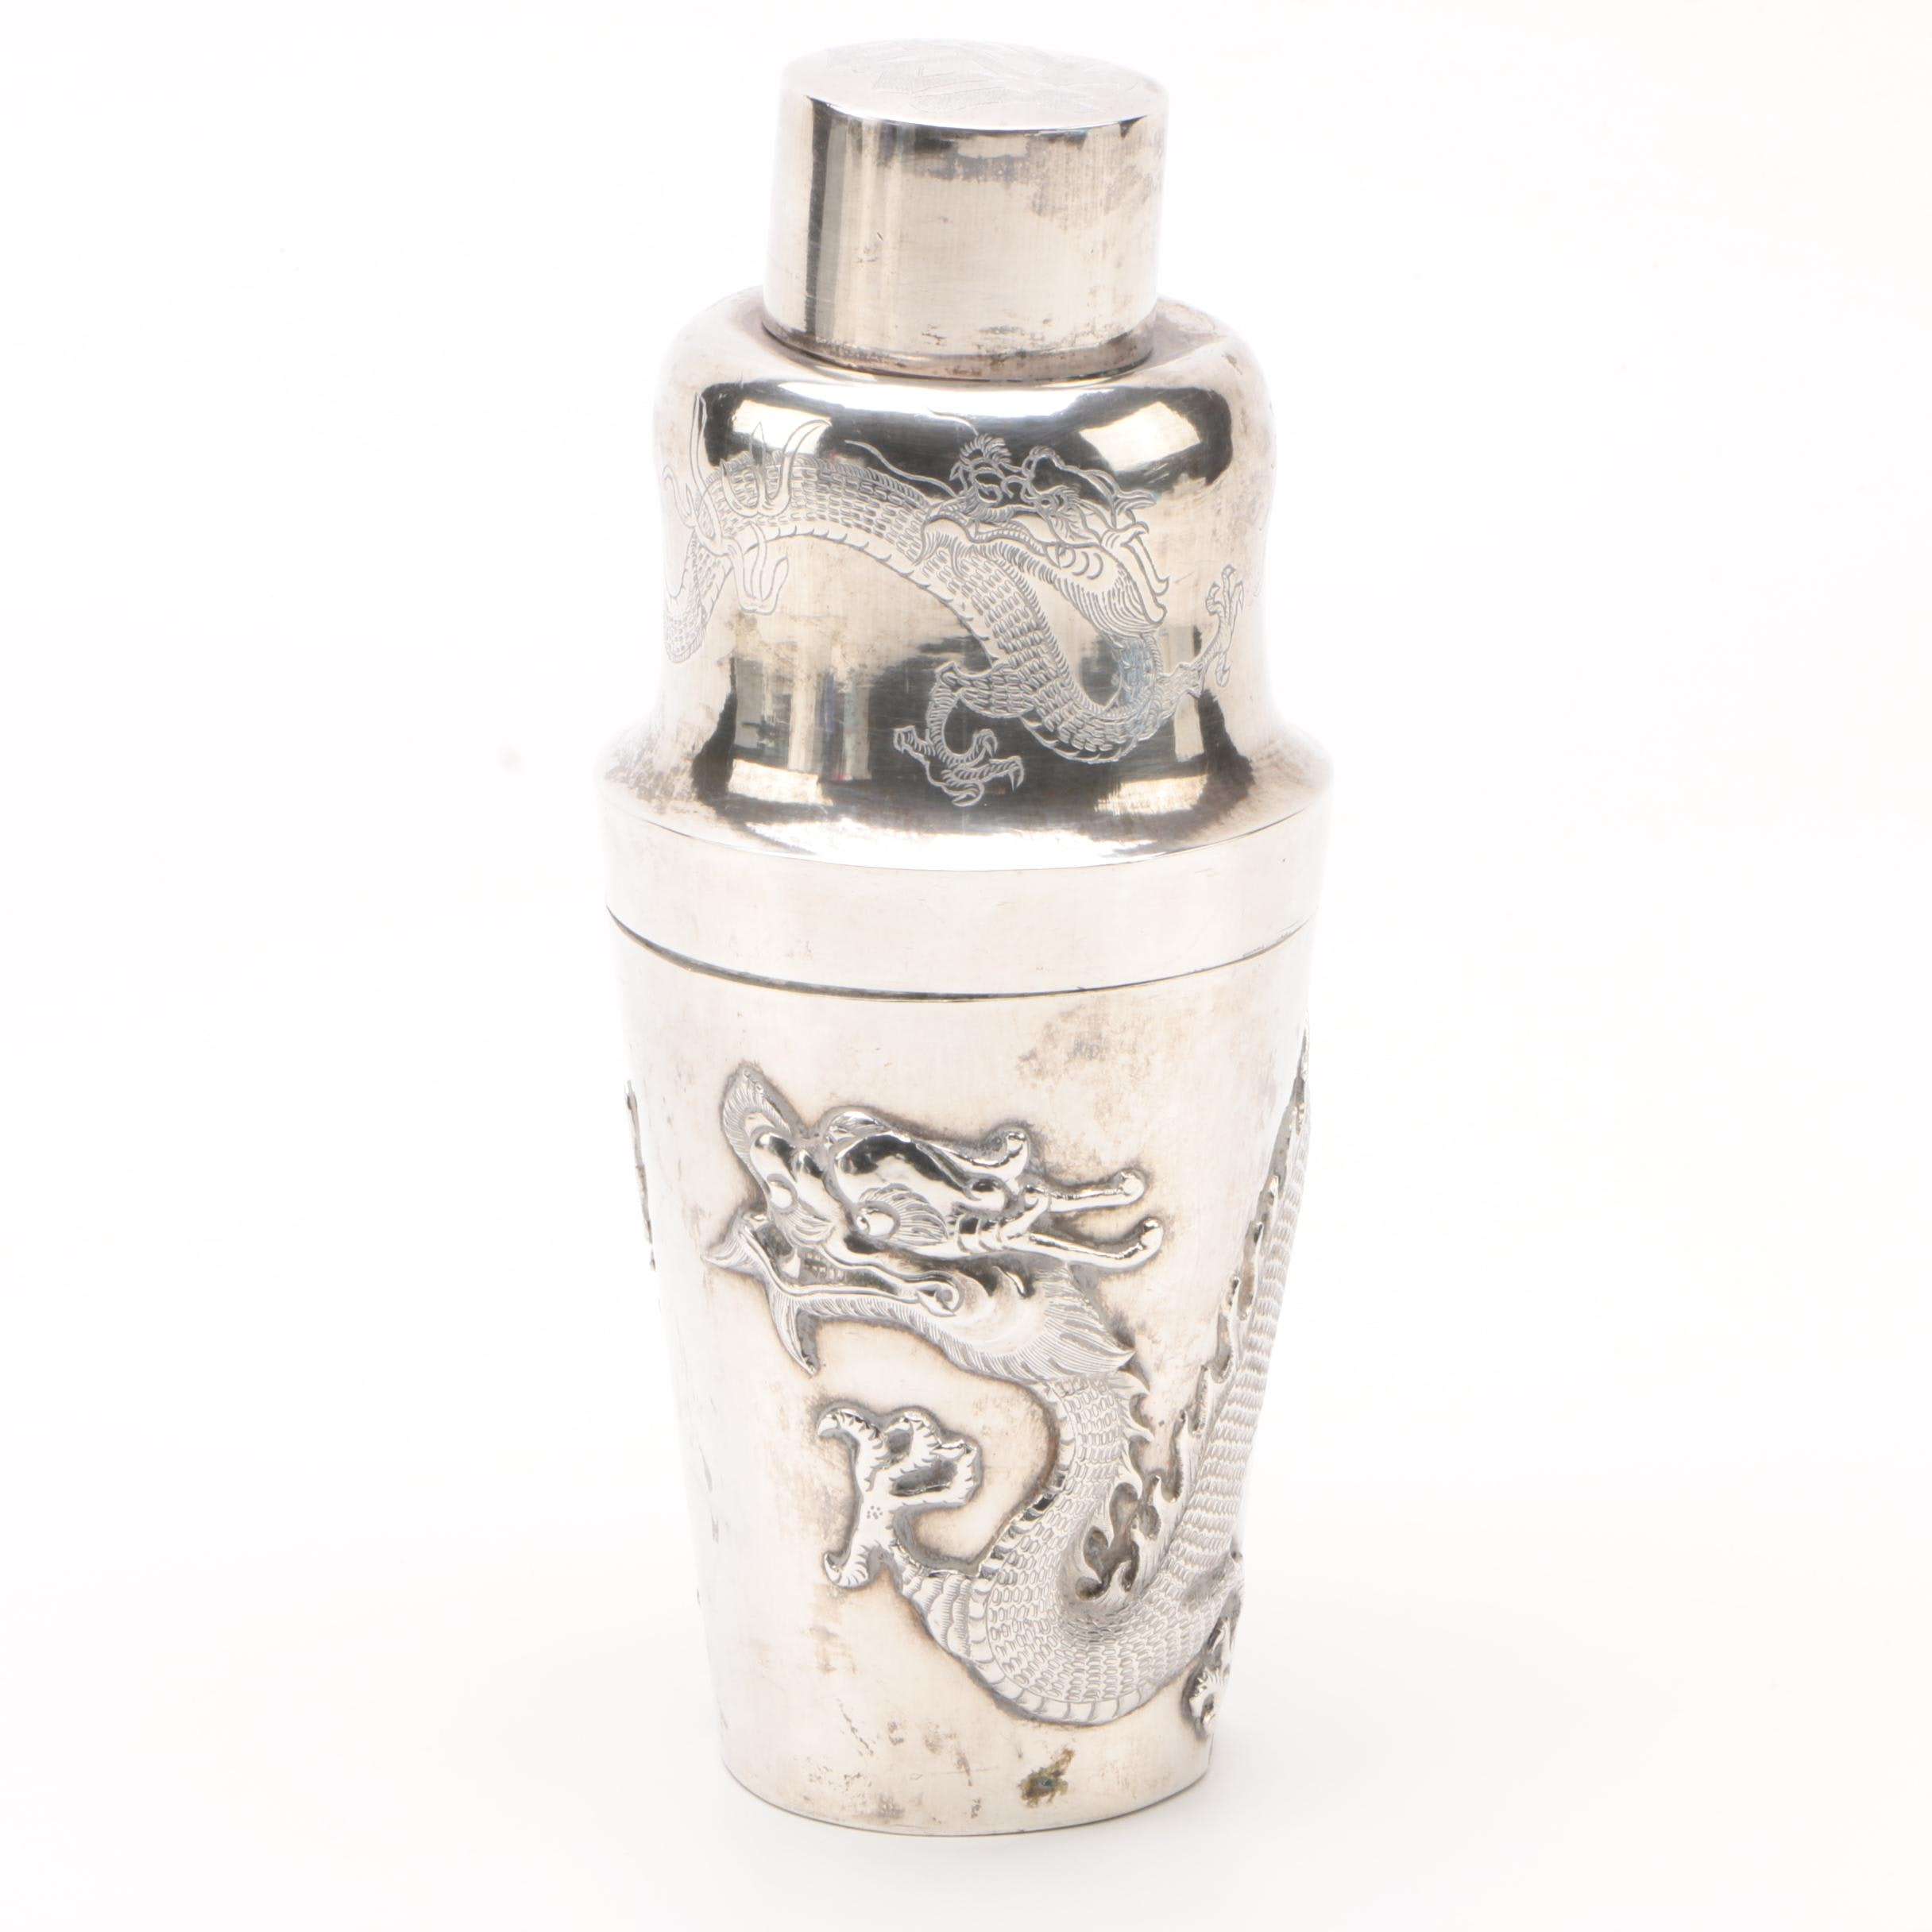 Chinese Export 900 Silver Dragon Motif Cocktail Mixer, Early 20th Century